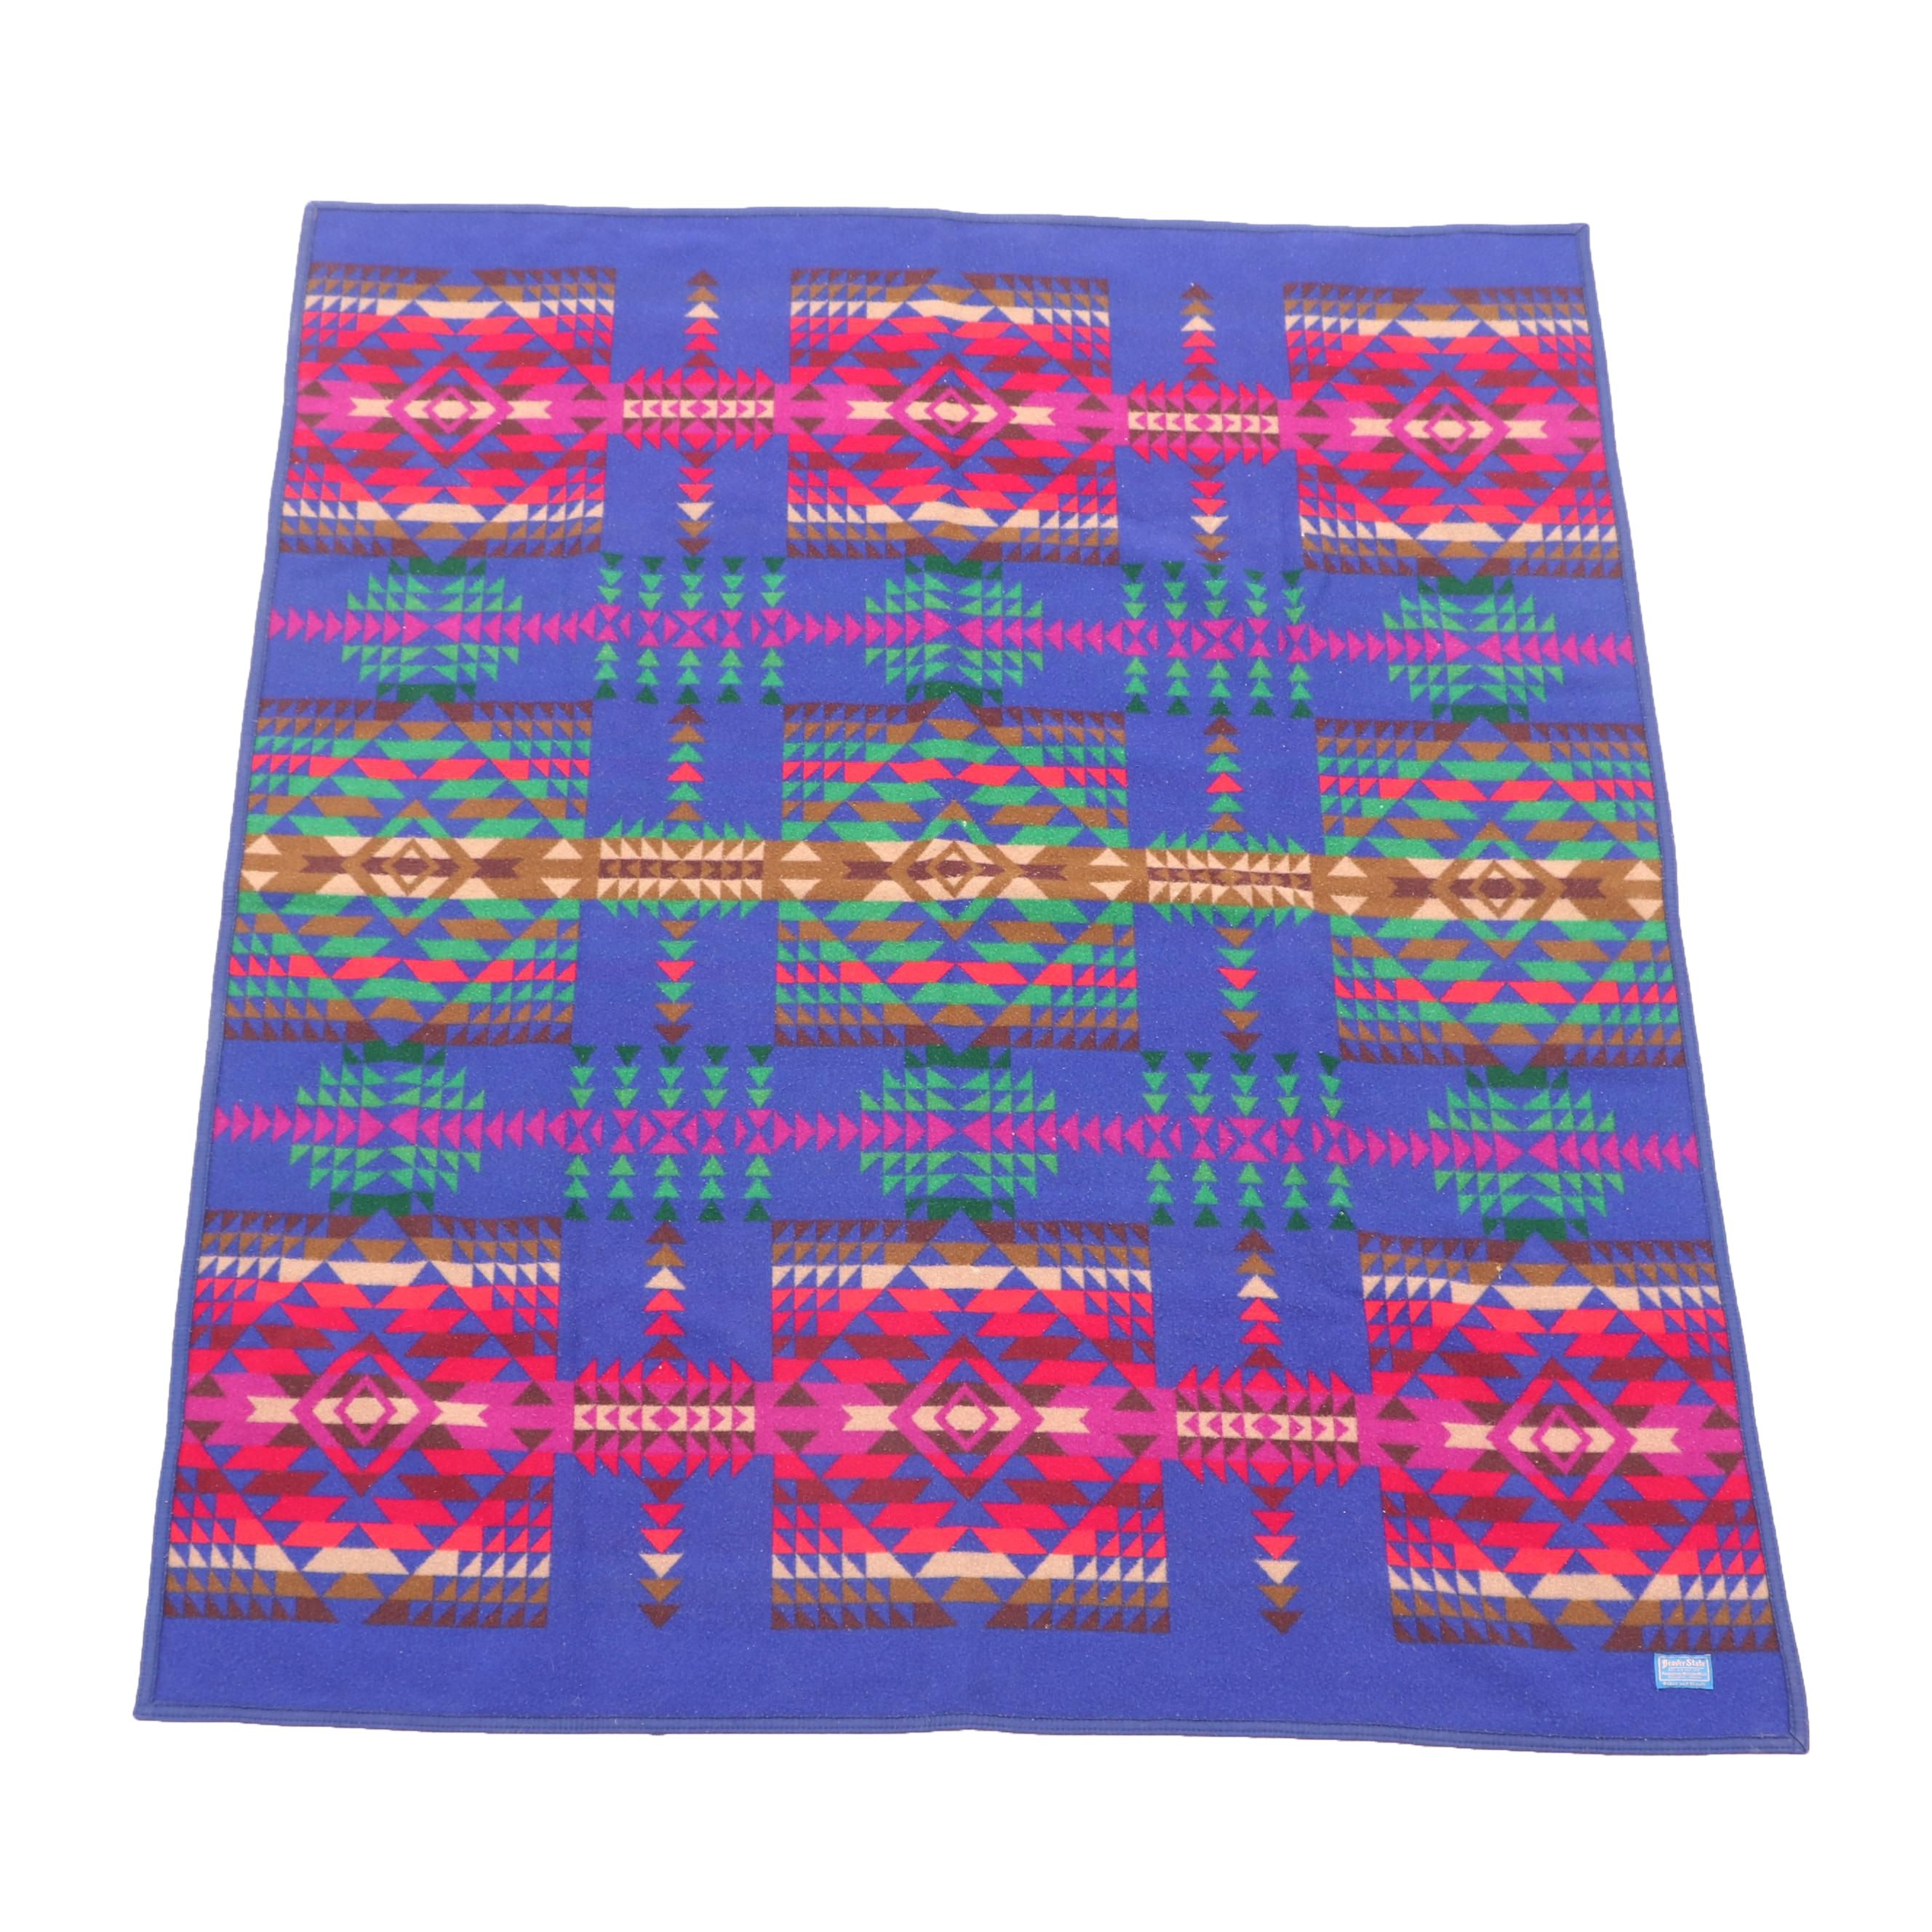 Pendleton Mill Beaver State Felted Wool Blanket with Geometric Pattern